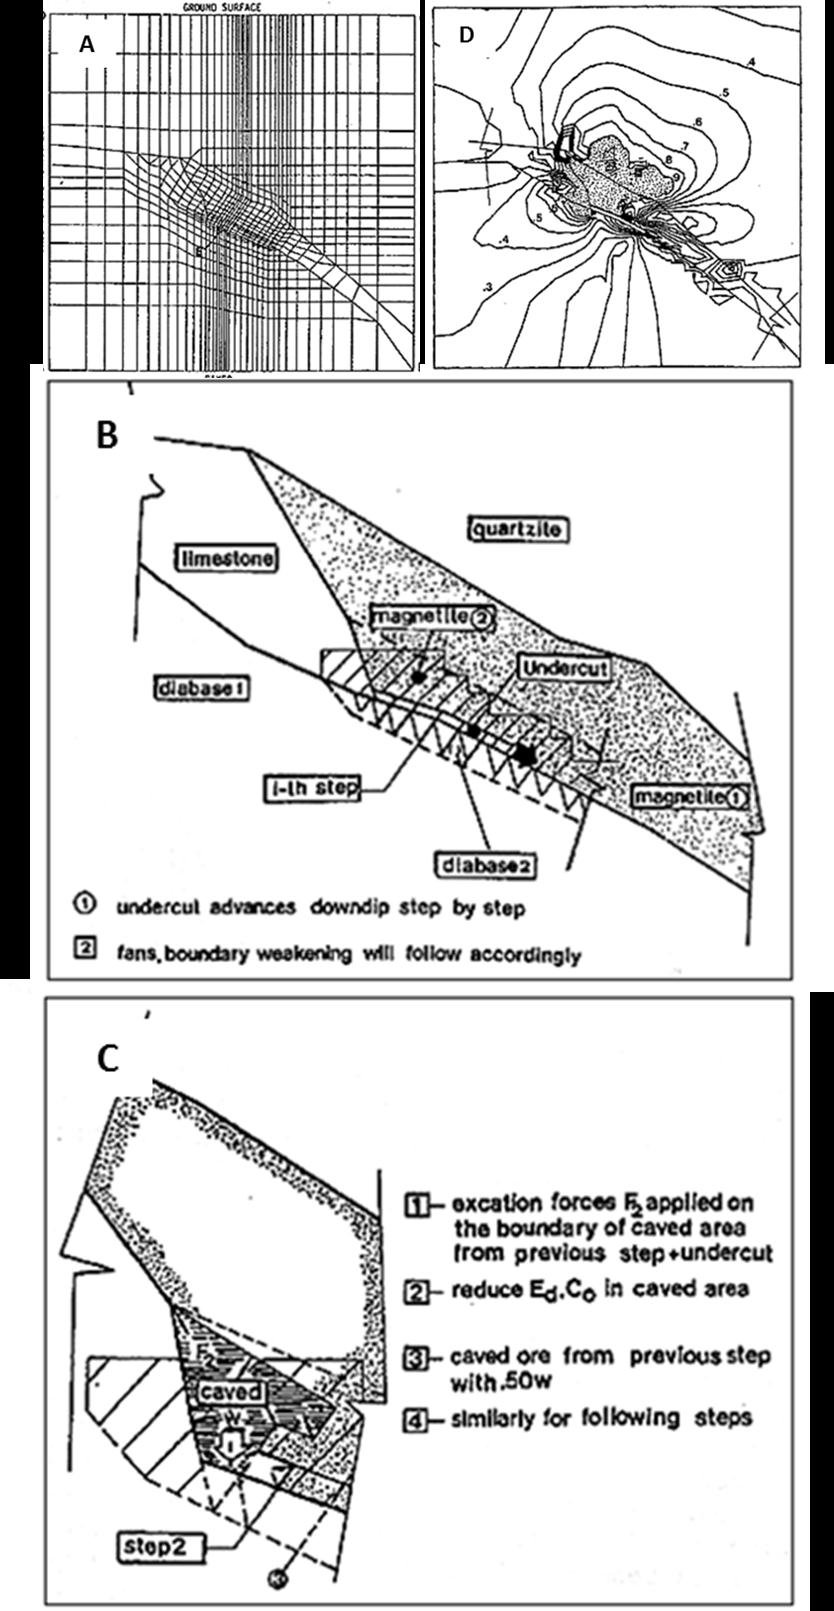 hight resolution of development of two dimensional numerical modelling approaches for cave download scientific diagram